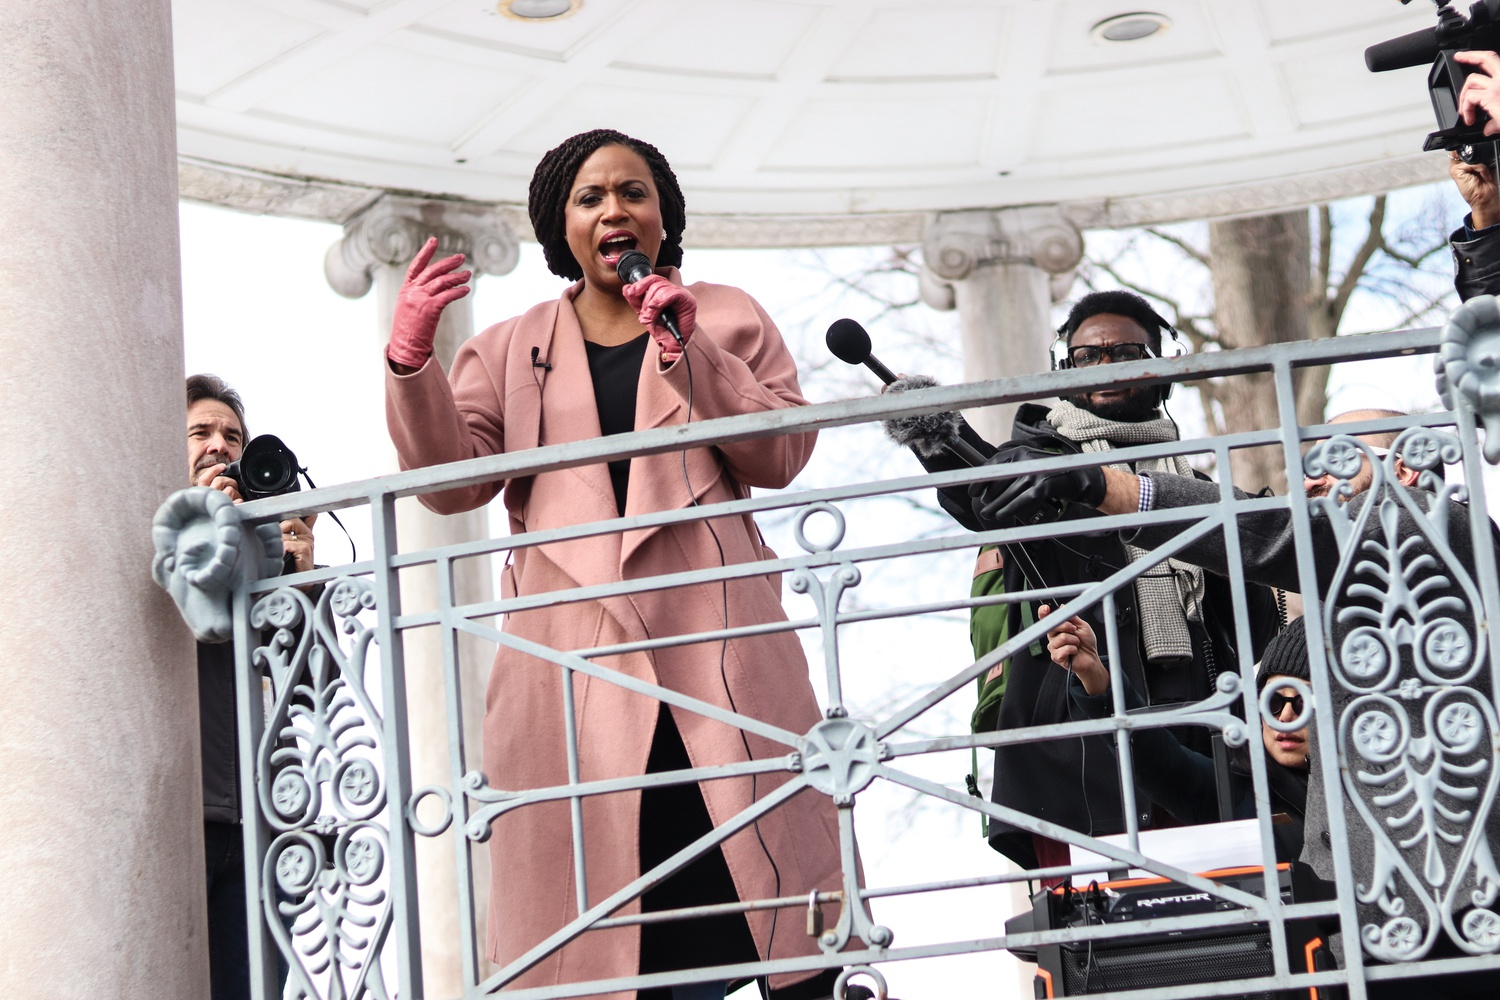 U.S. Representative Ayanna S. Pressley (D-Mass.) spoke to the crowd about the importance of youth voices and youth work at the Boston Common Grand Stand during a rally before the March for Youth Jobs. Other speakers included State Representative Liz Miranda, who spoke about her own experiences beginning to work at age thirteen.